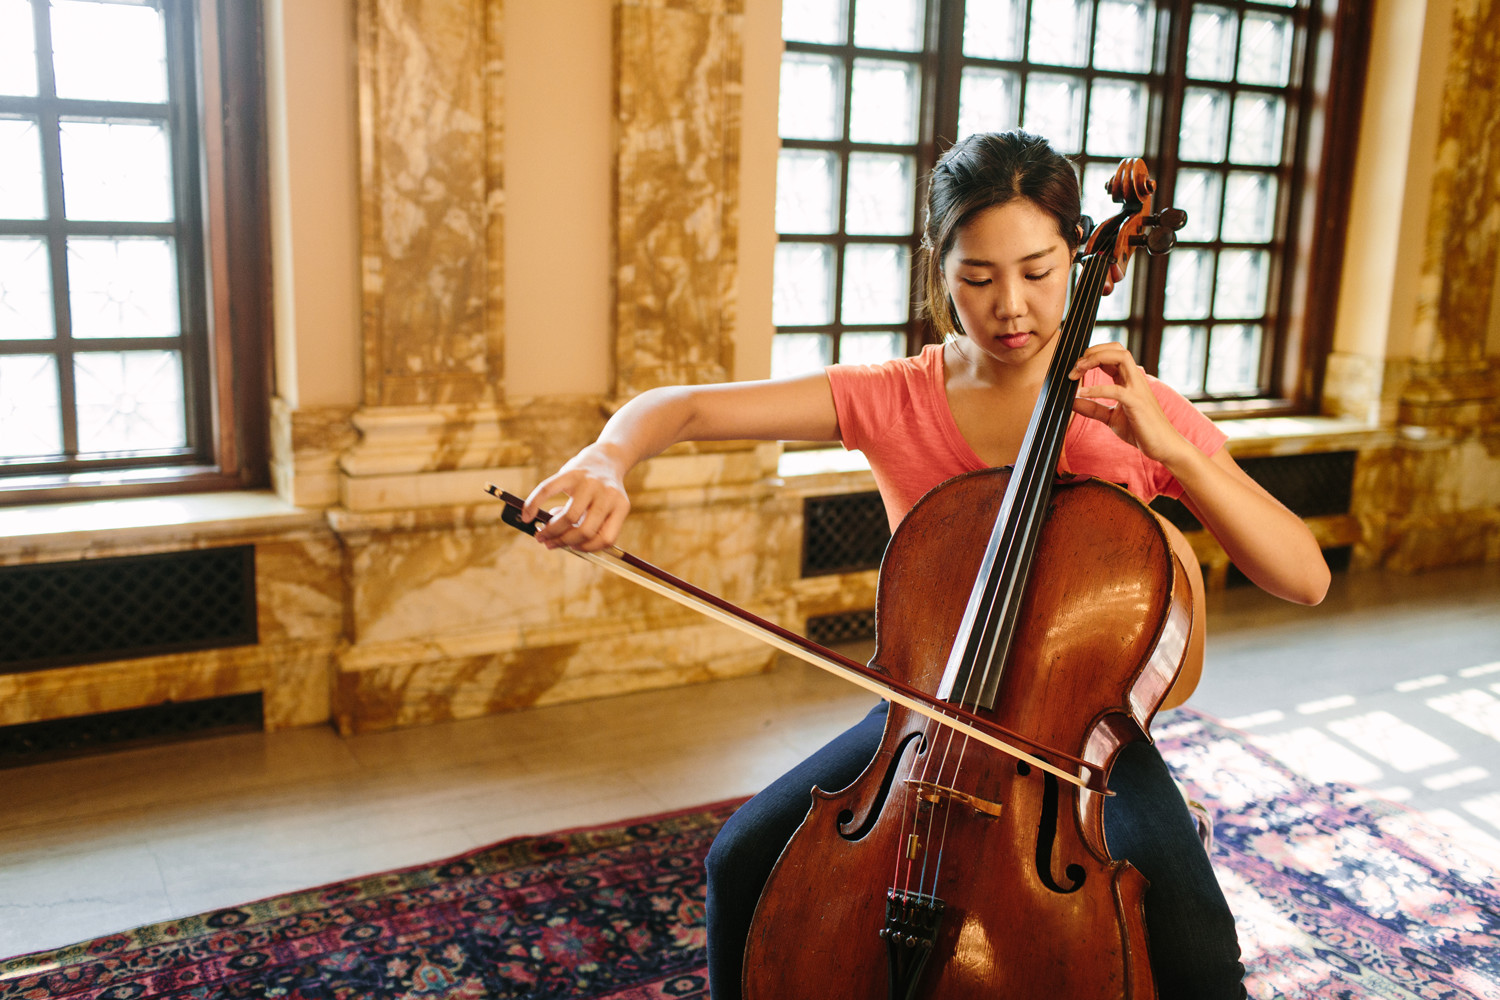 What are the qualifications to become a university profesor in music?